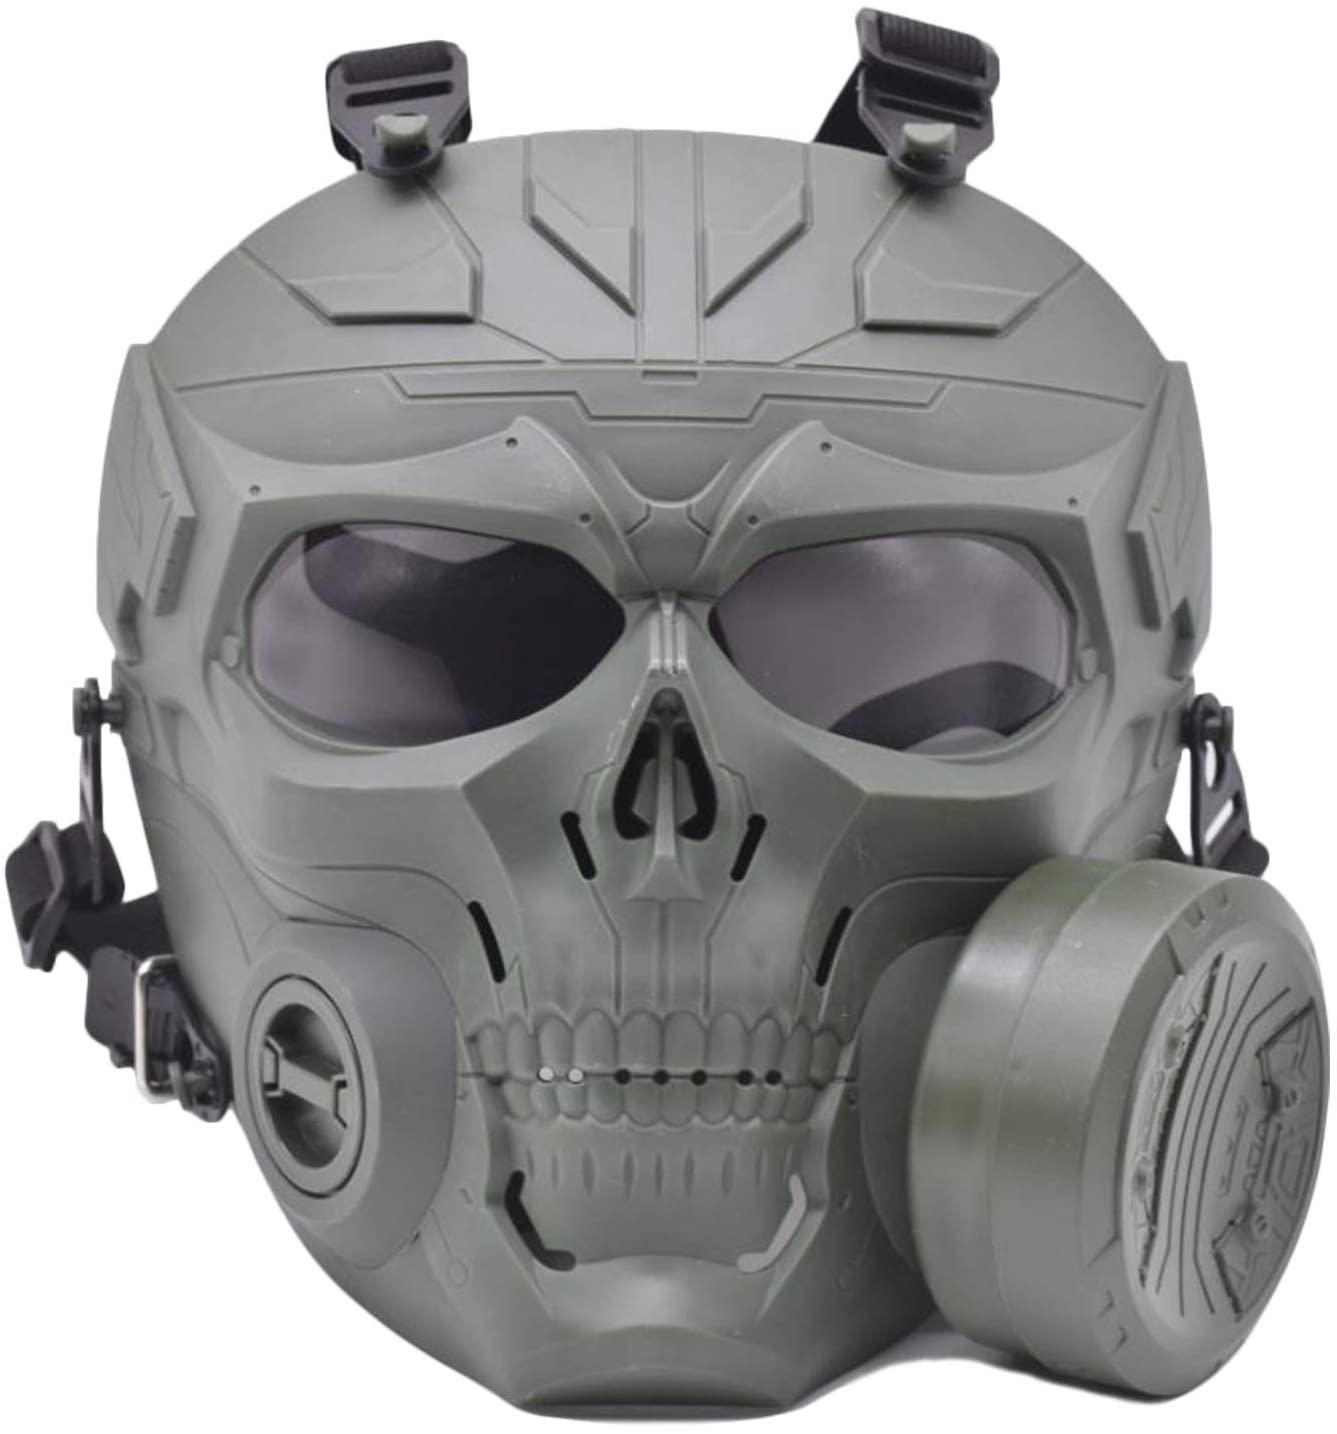 Updated Version M10 Airsoft Mask Tactical Protective Adjustable Skull Full Face Mask Dummy Game Mask with Anti-Fog Fans Adjustable Strap for Airsoft Paintball Cosplay Costume Party